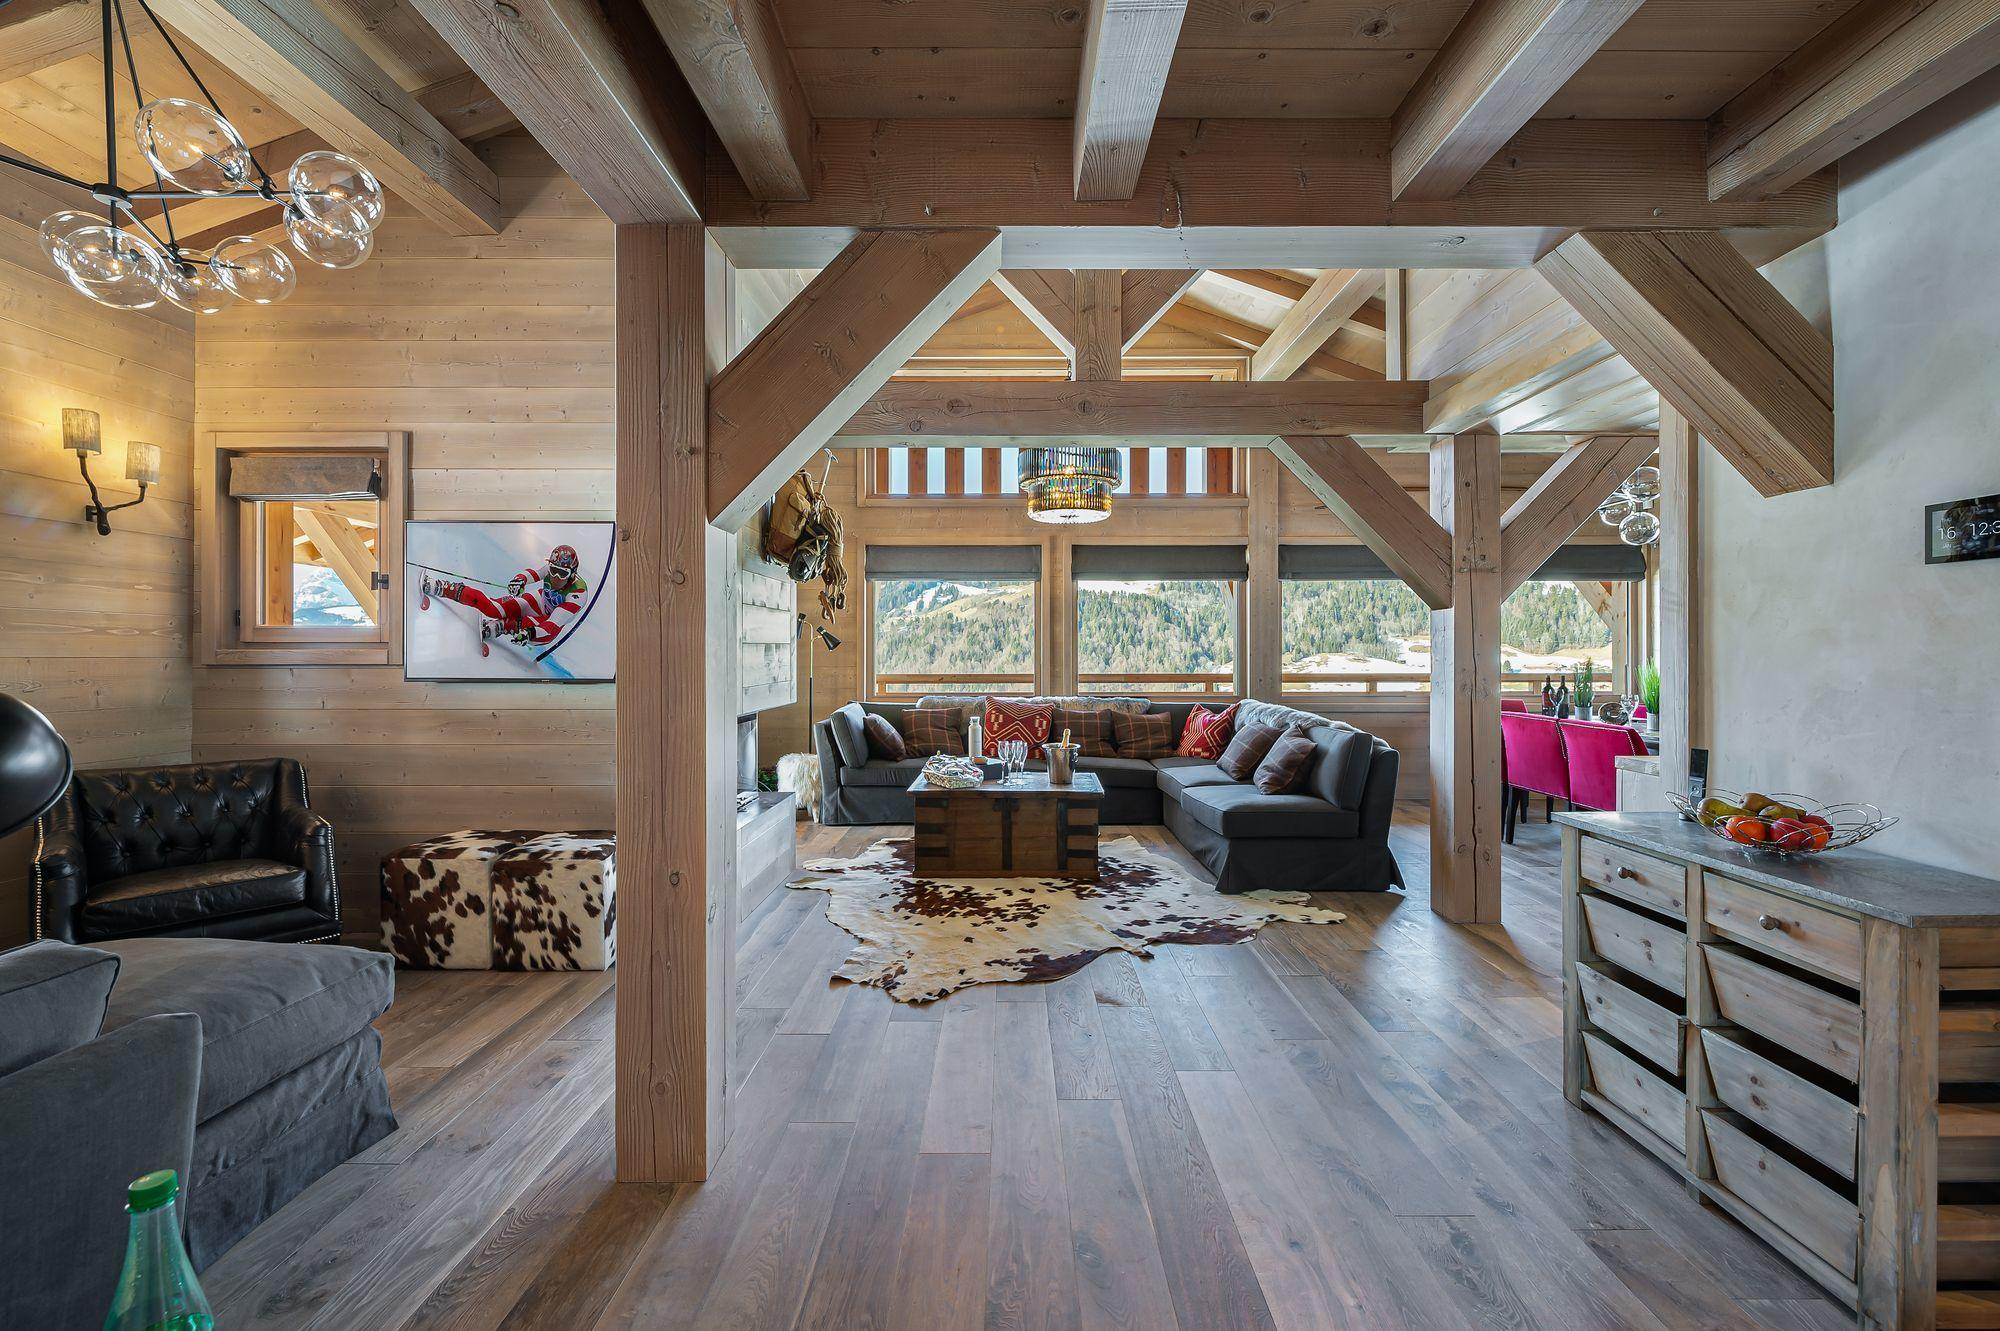 Grey Swan Accommodation in Megeve